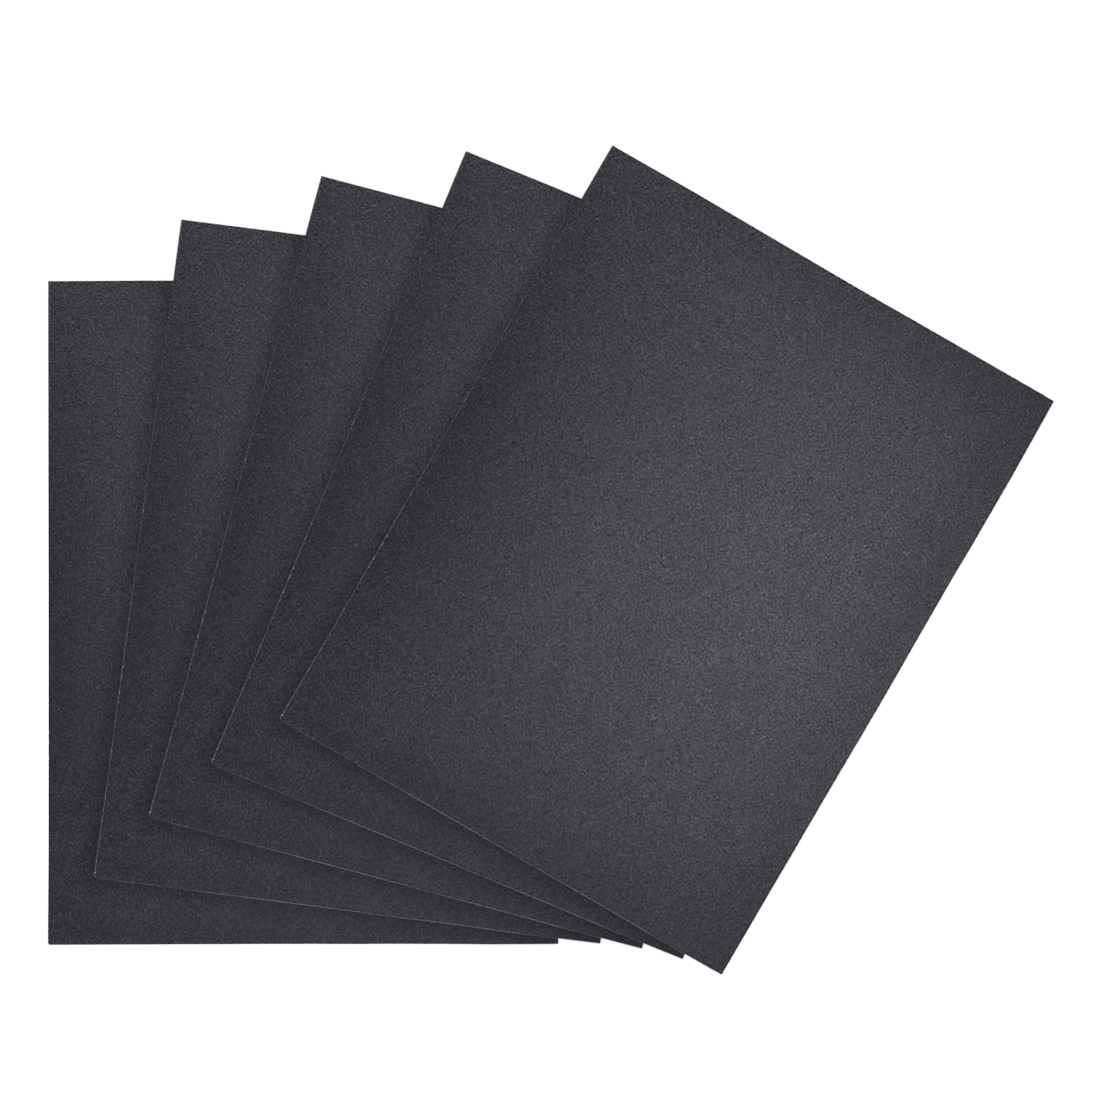 Waterproof Sandpaper, Wet Dry Sand Paper Grit of 180, 11 x 9inch 5pcs